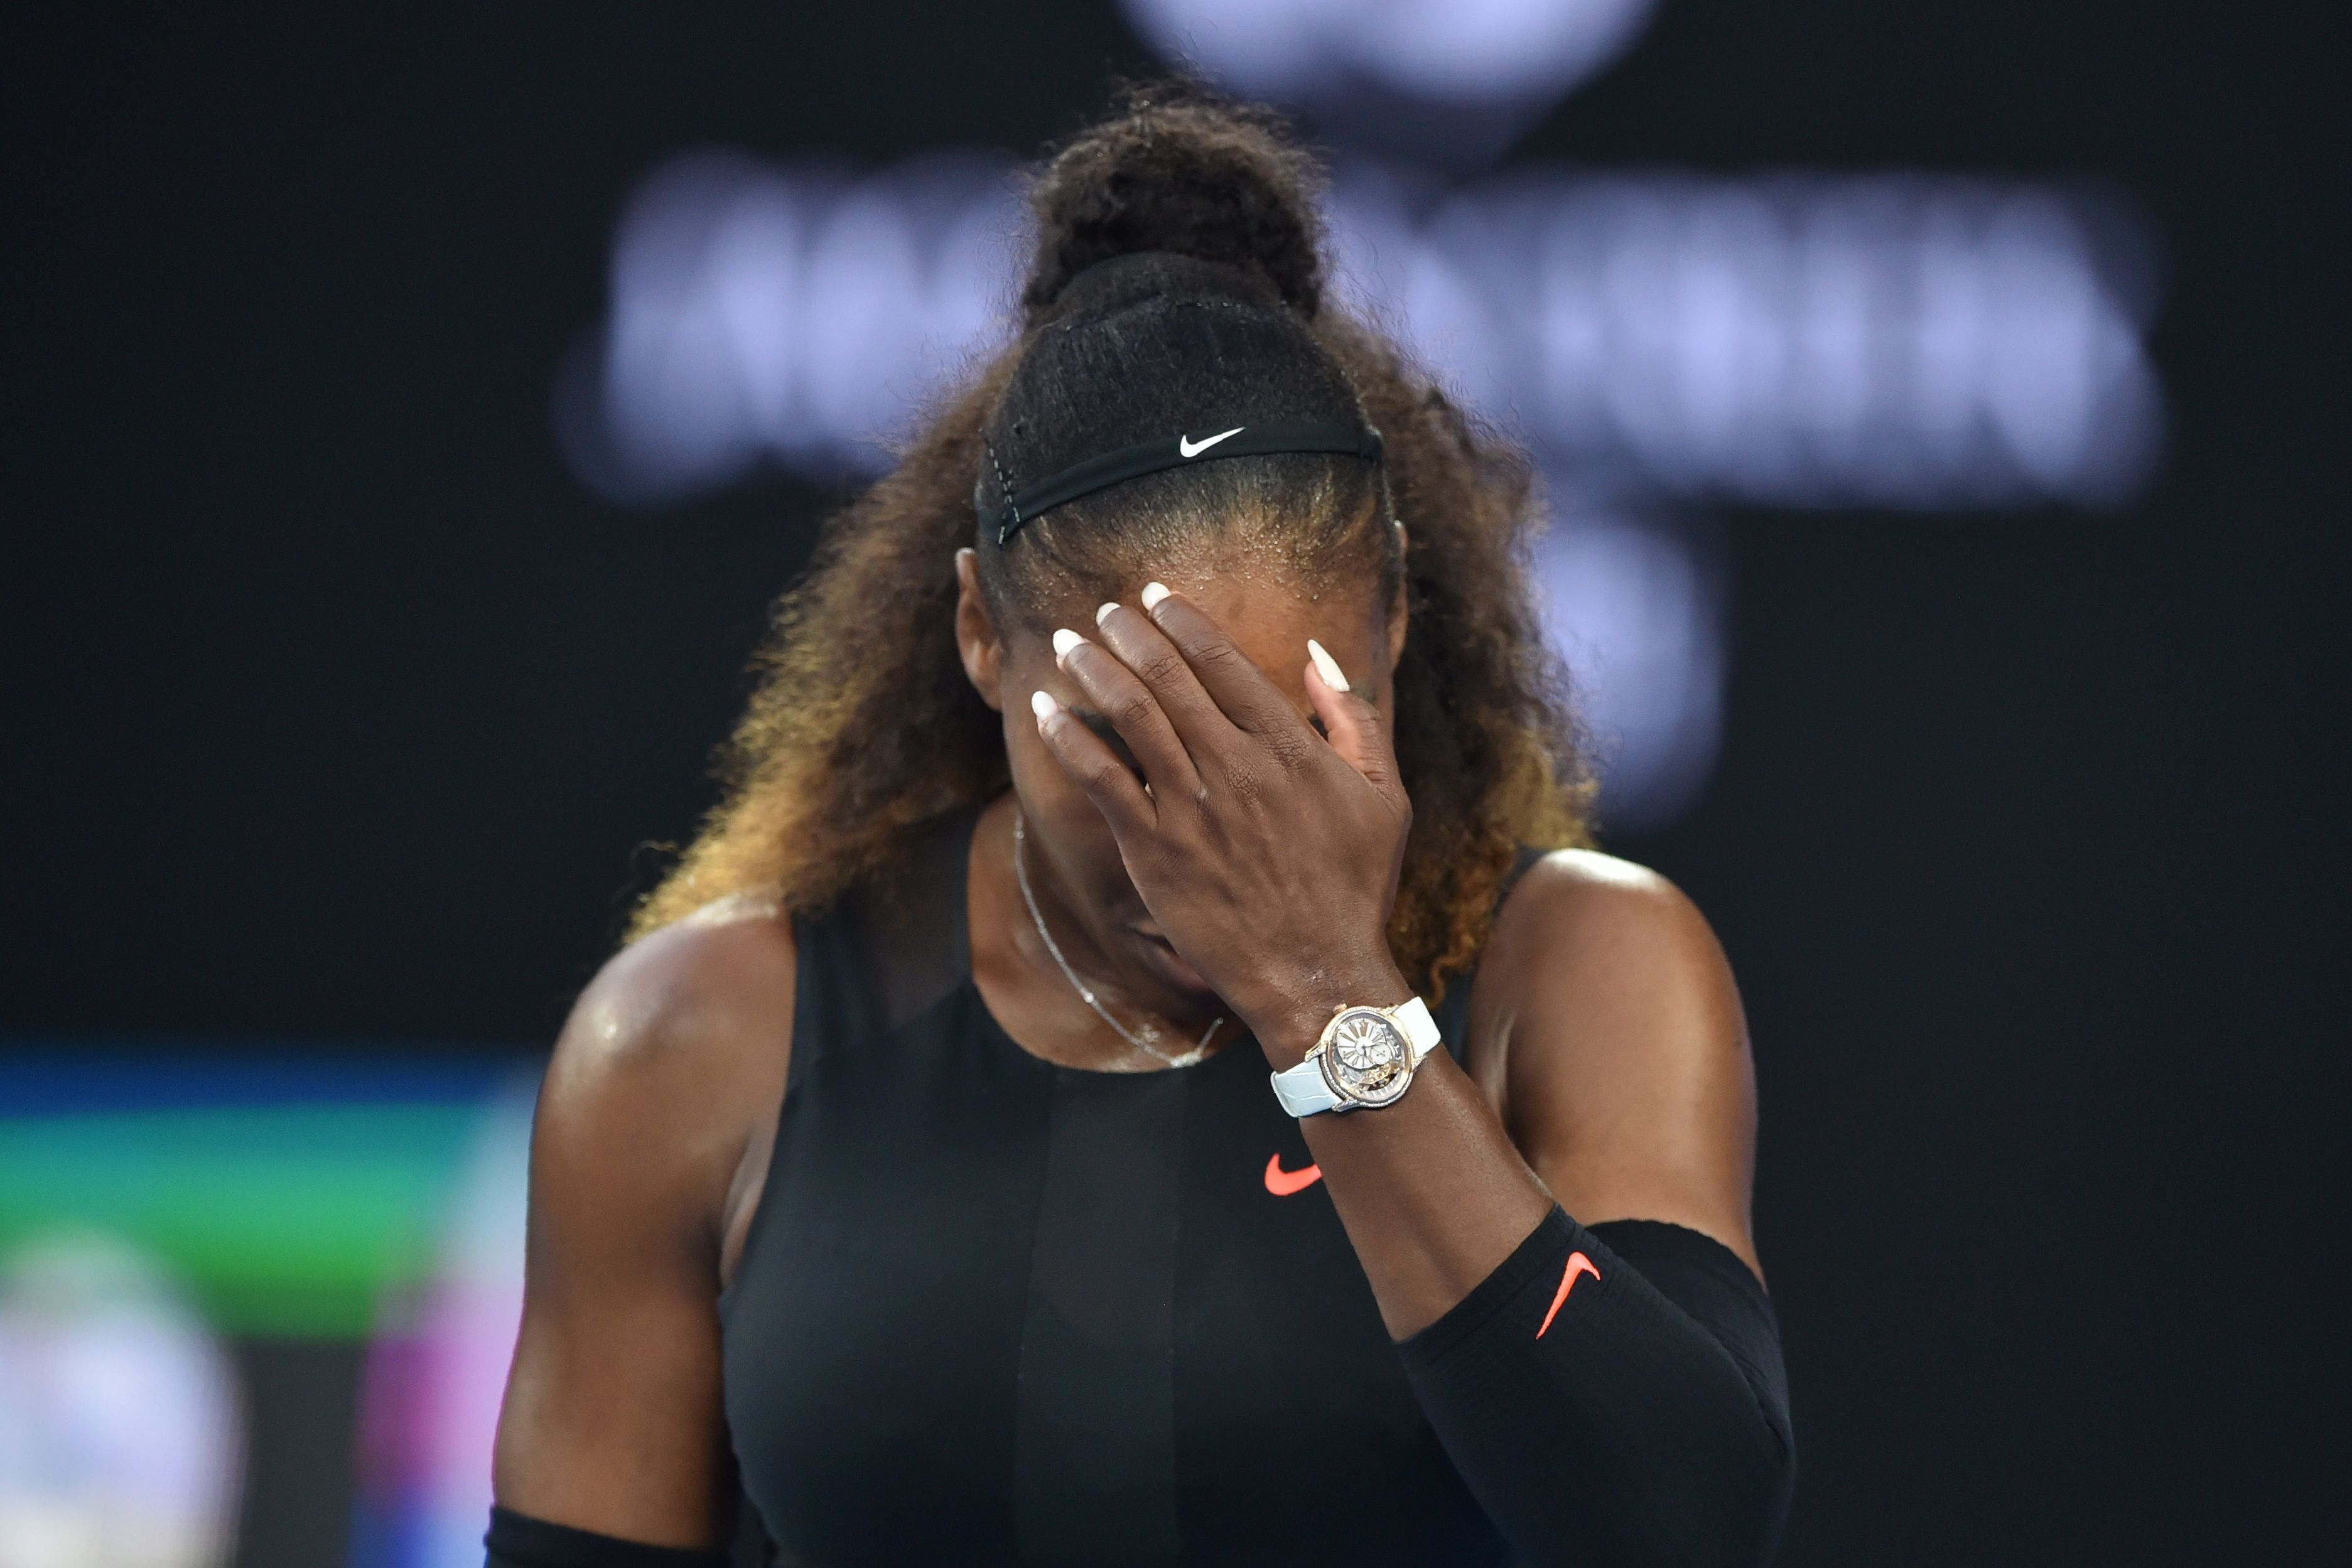 Racist Comment About Serena Williams Gets Buffalo Radio Host 'Swiftly Terminated'